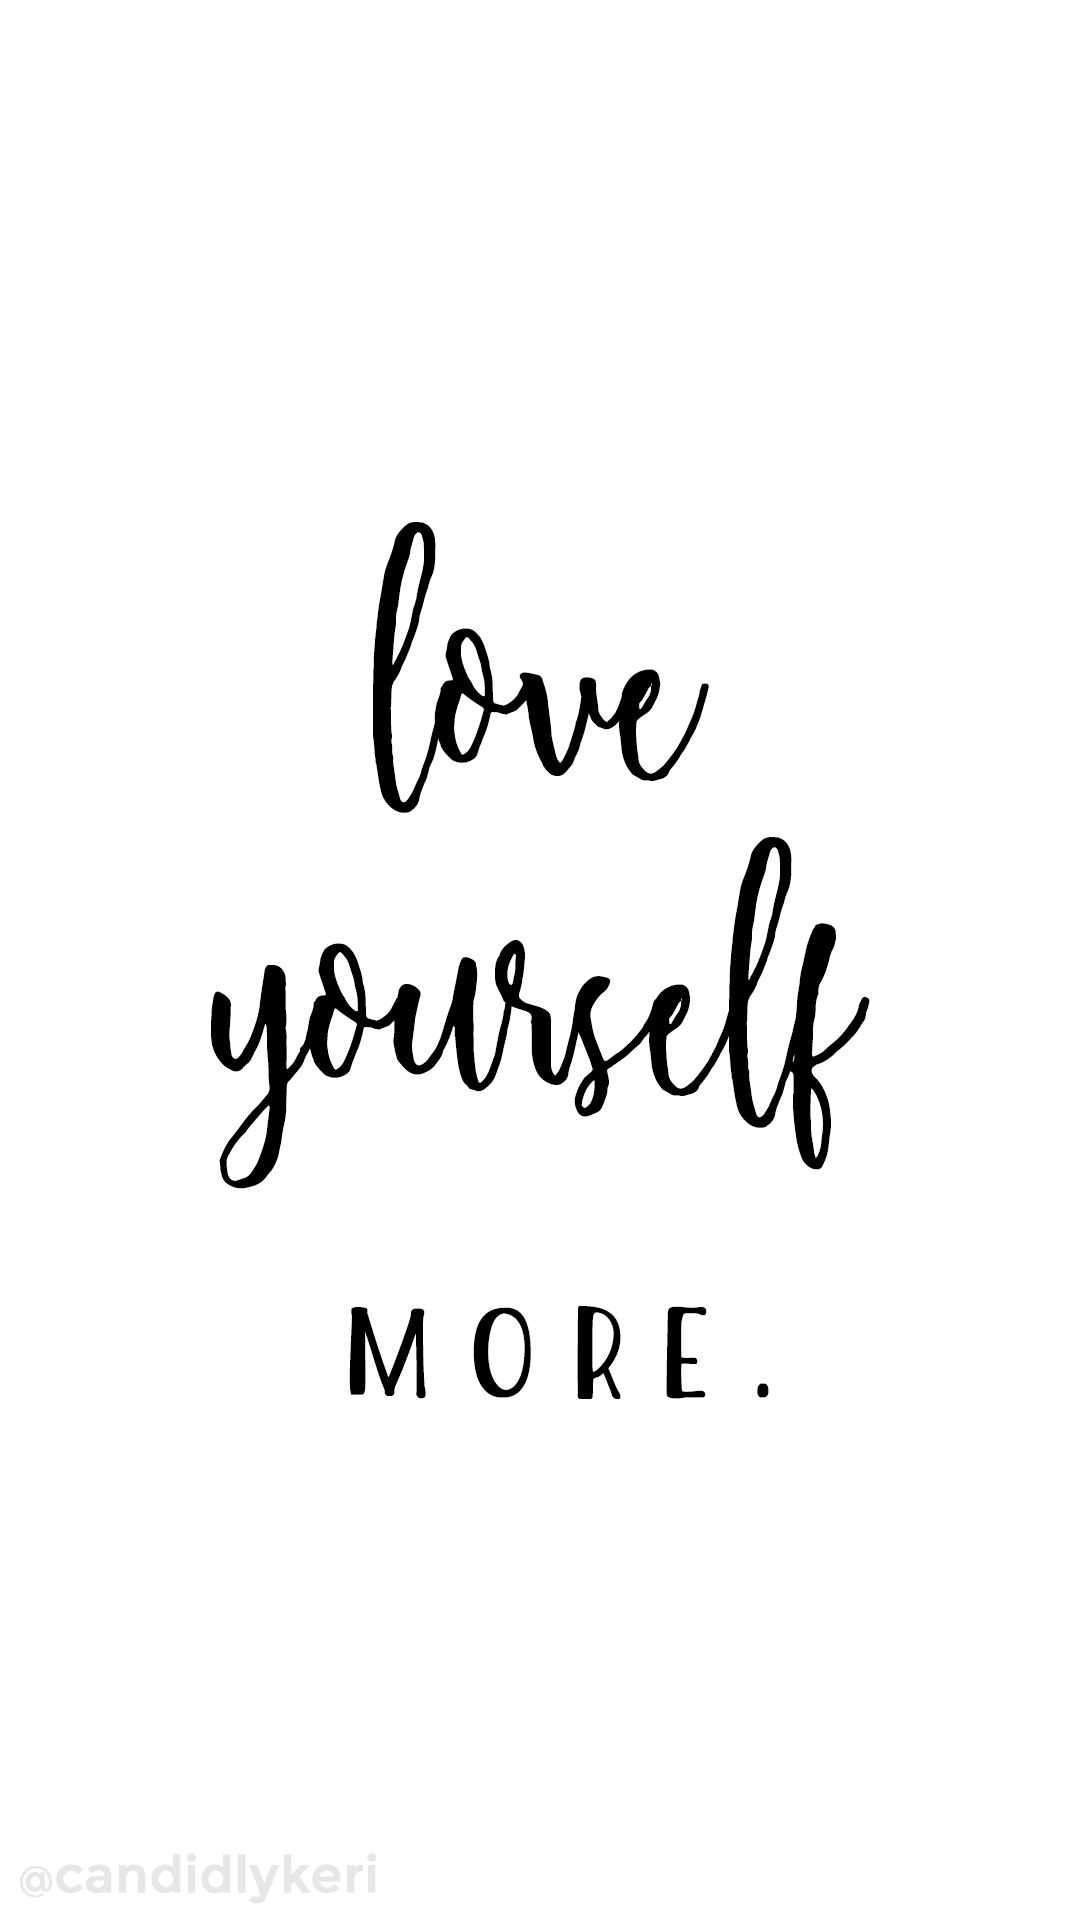 Wallpaper Love Yourself : Love Yourself More Quote inspirational self love wallpaper you can download for free on the blog ...